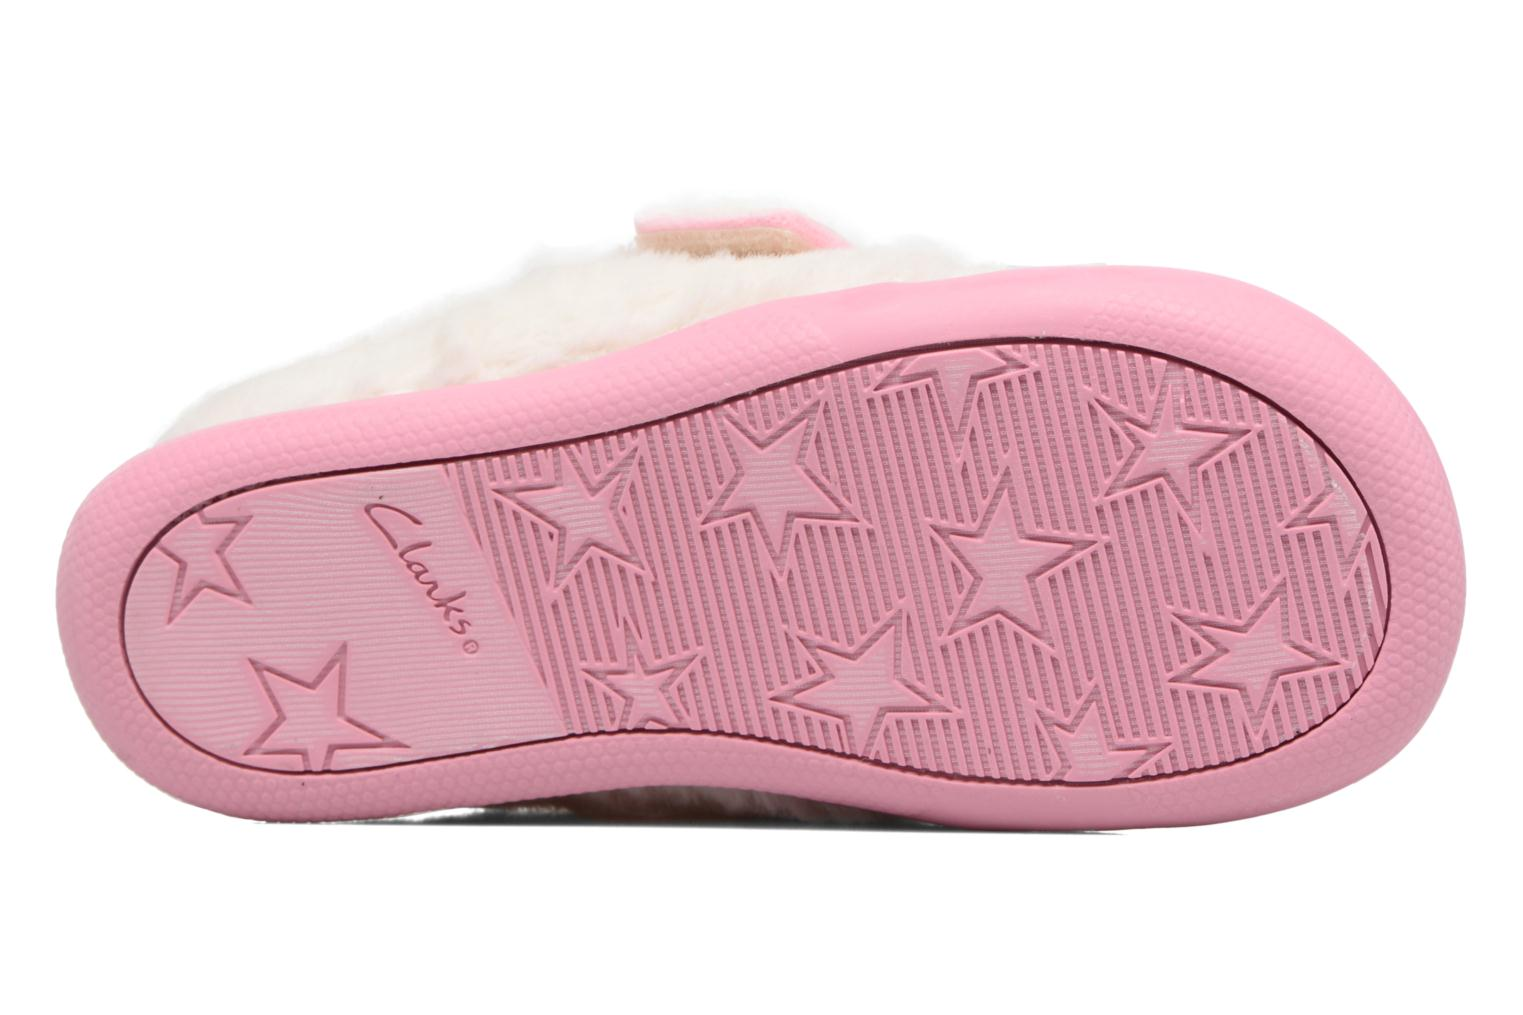 Cuba Patch Inf White/pink